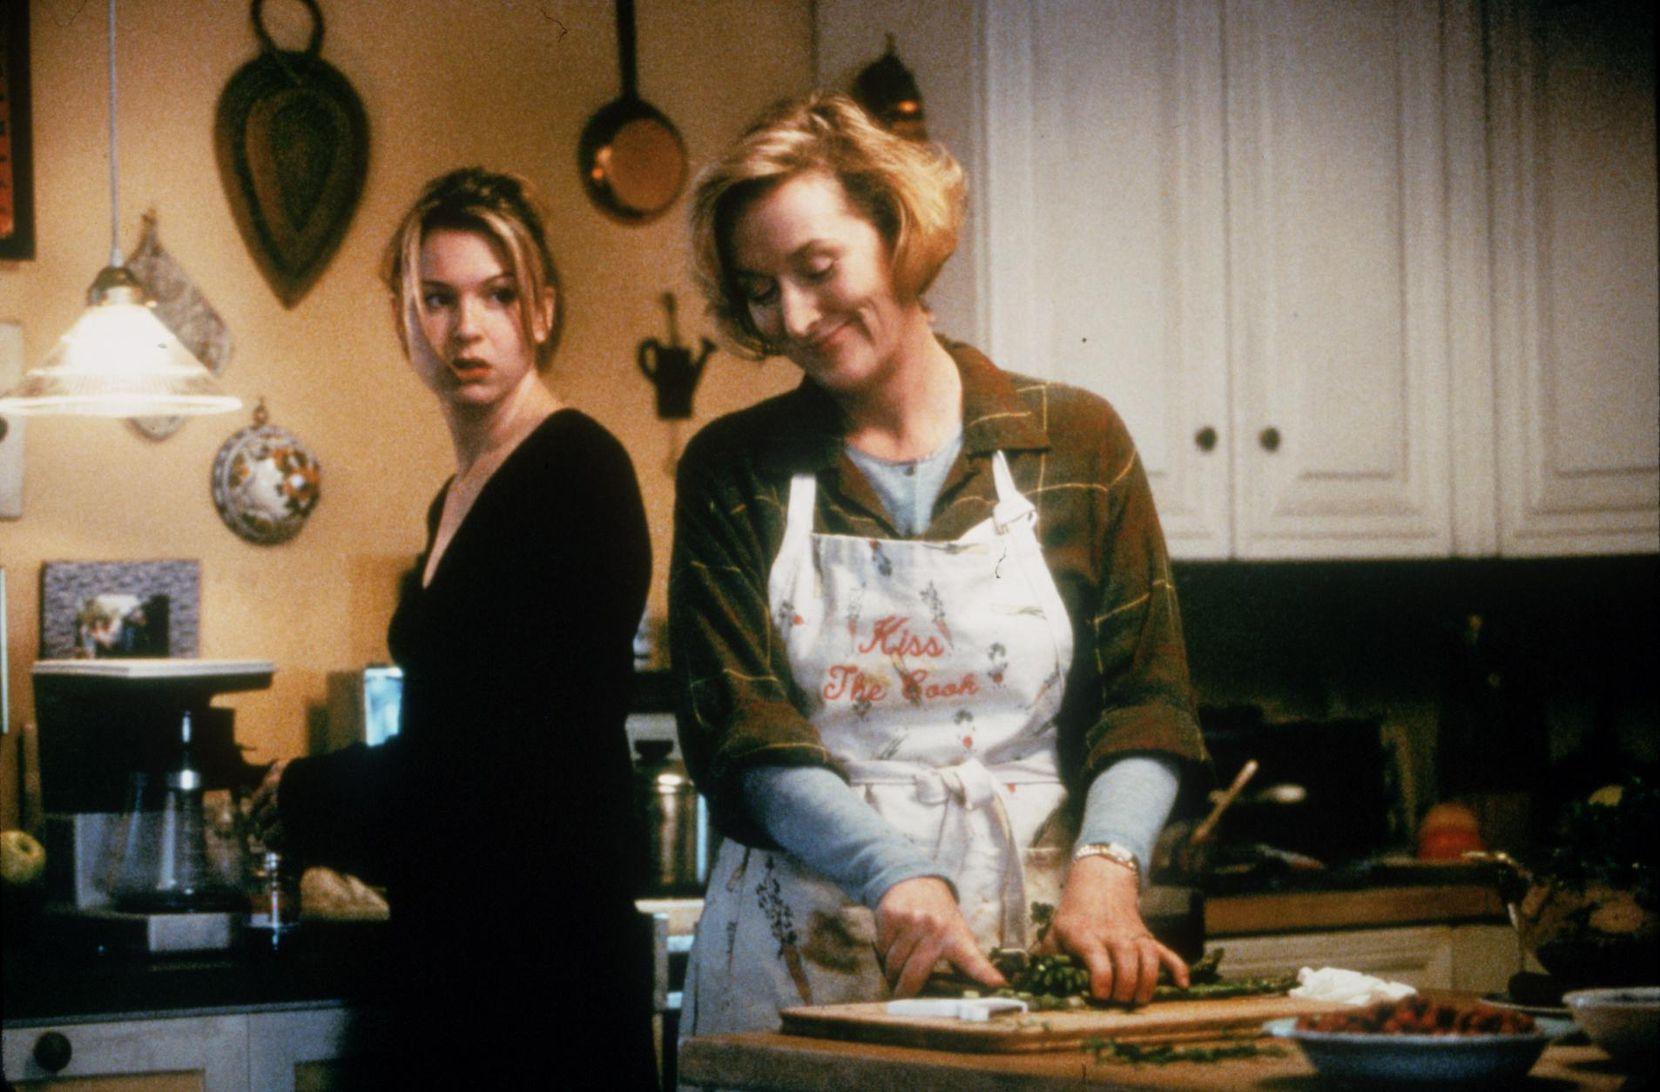 Renée Zellweger and Meryl Streep in the movie, 'One True Thing.'